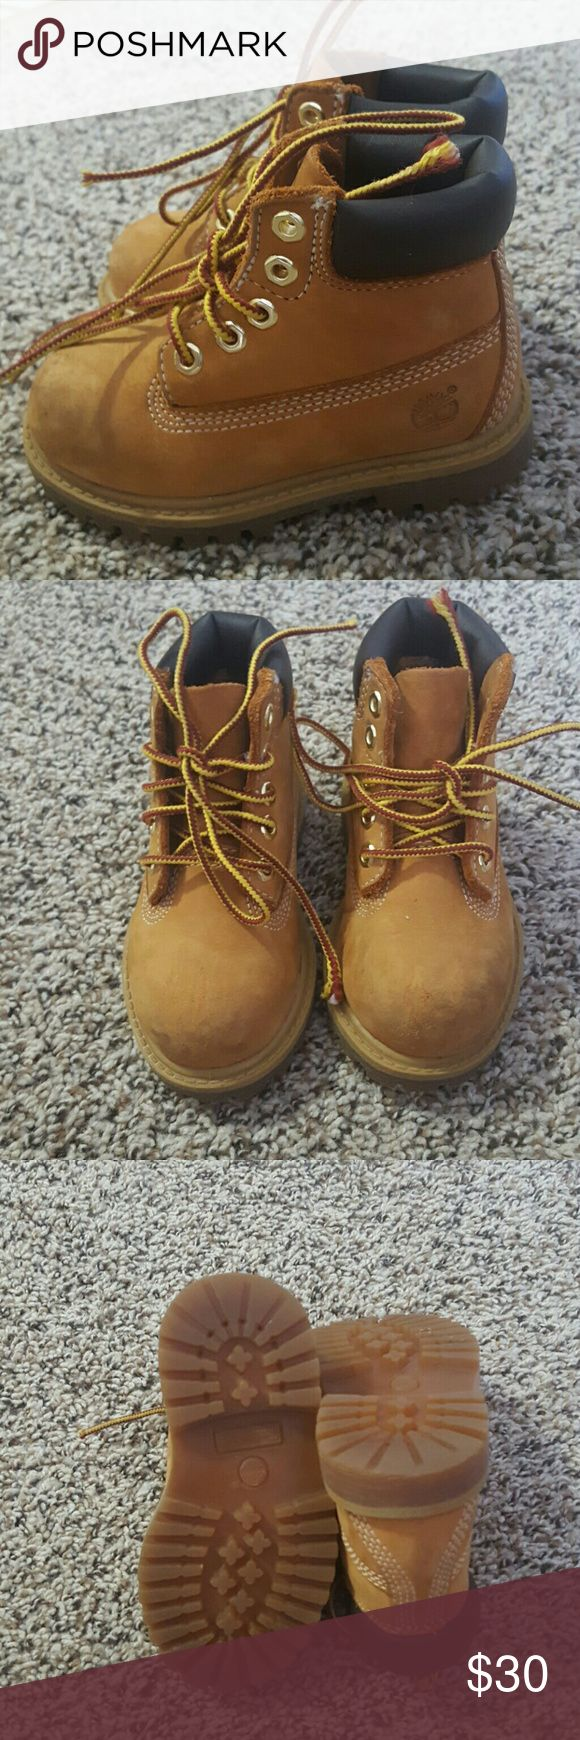 Timberland for toddler size 6.5 Wore them once in great condition Timberland Shoes Boots